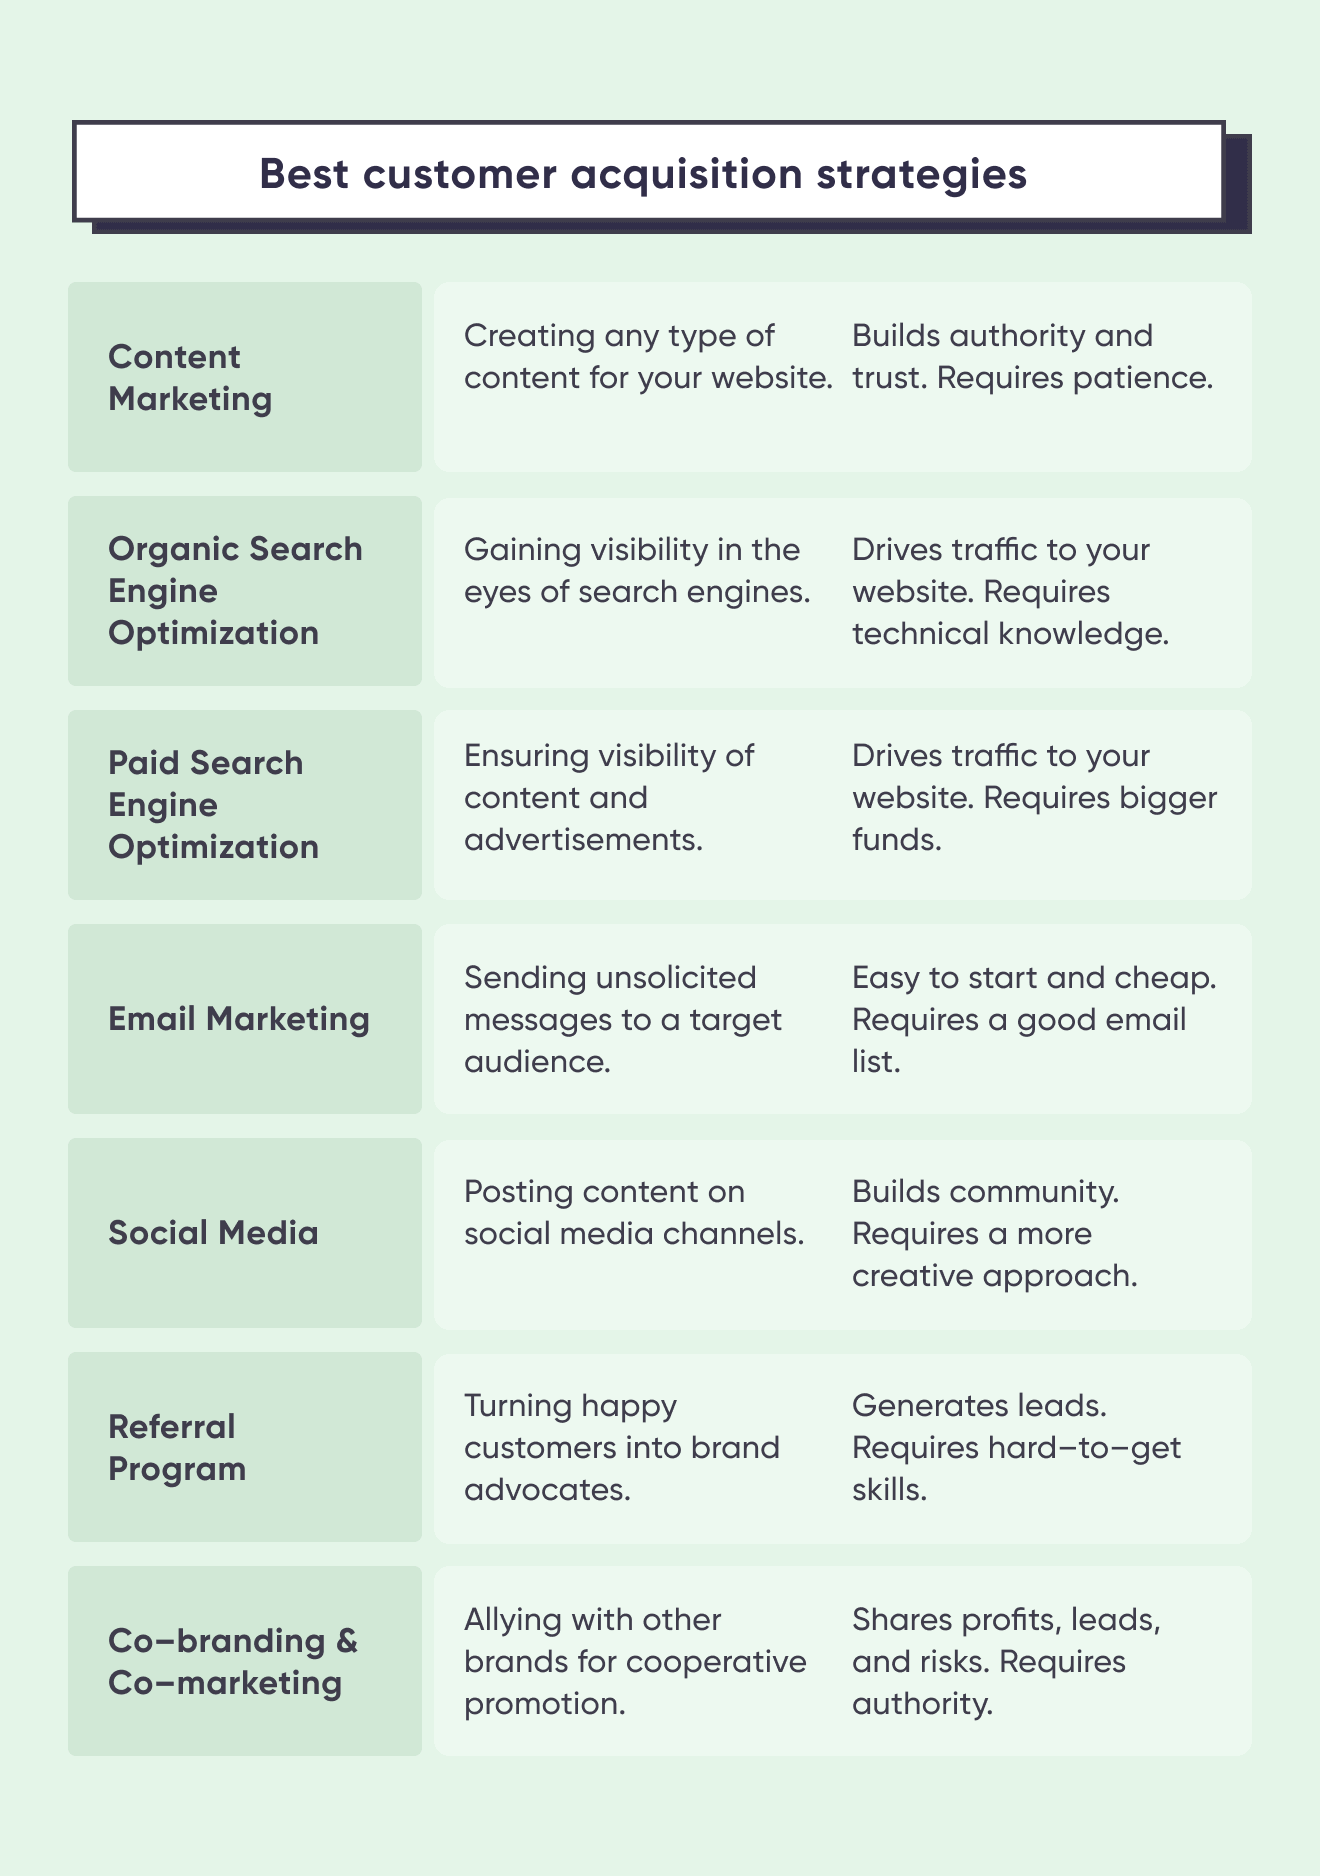 Best customer acquisition strategies summed up in a table.